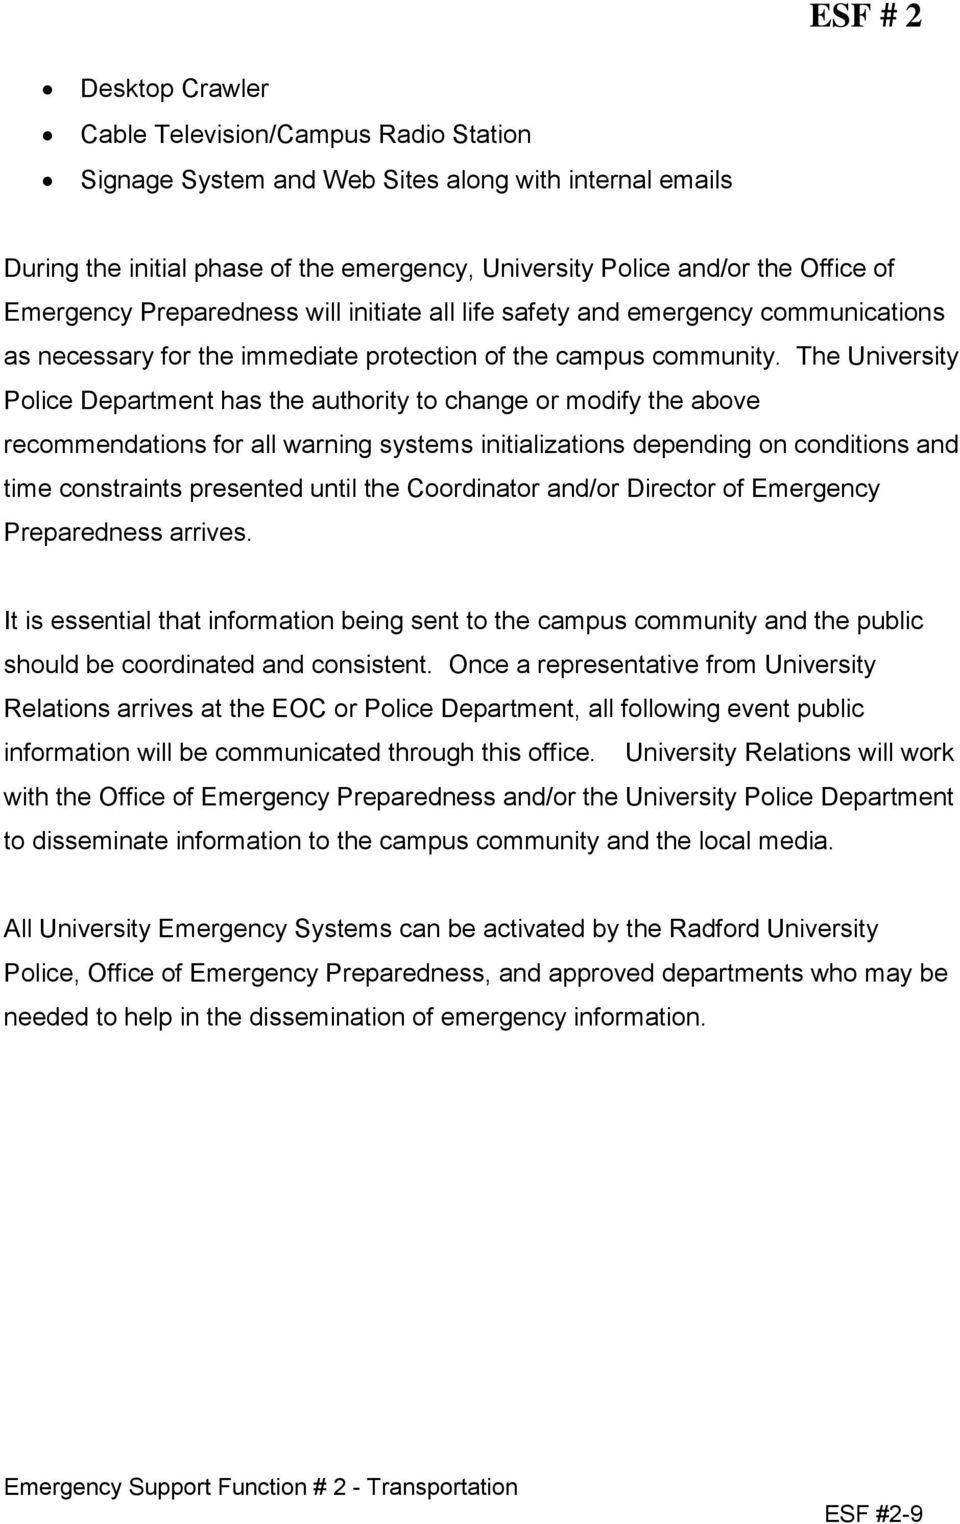 The University Police Department has the authority to change or modify the above recommendations for all warning systems initializations depending on conditions and time constraints presented until